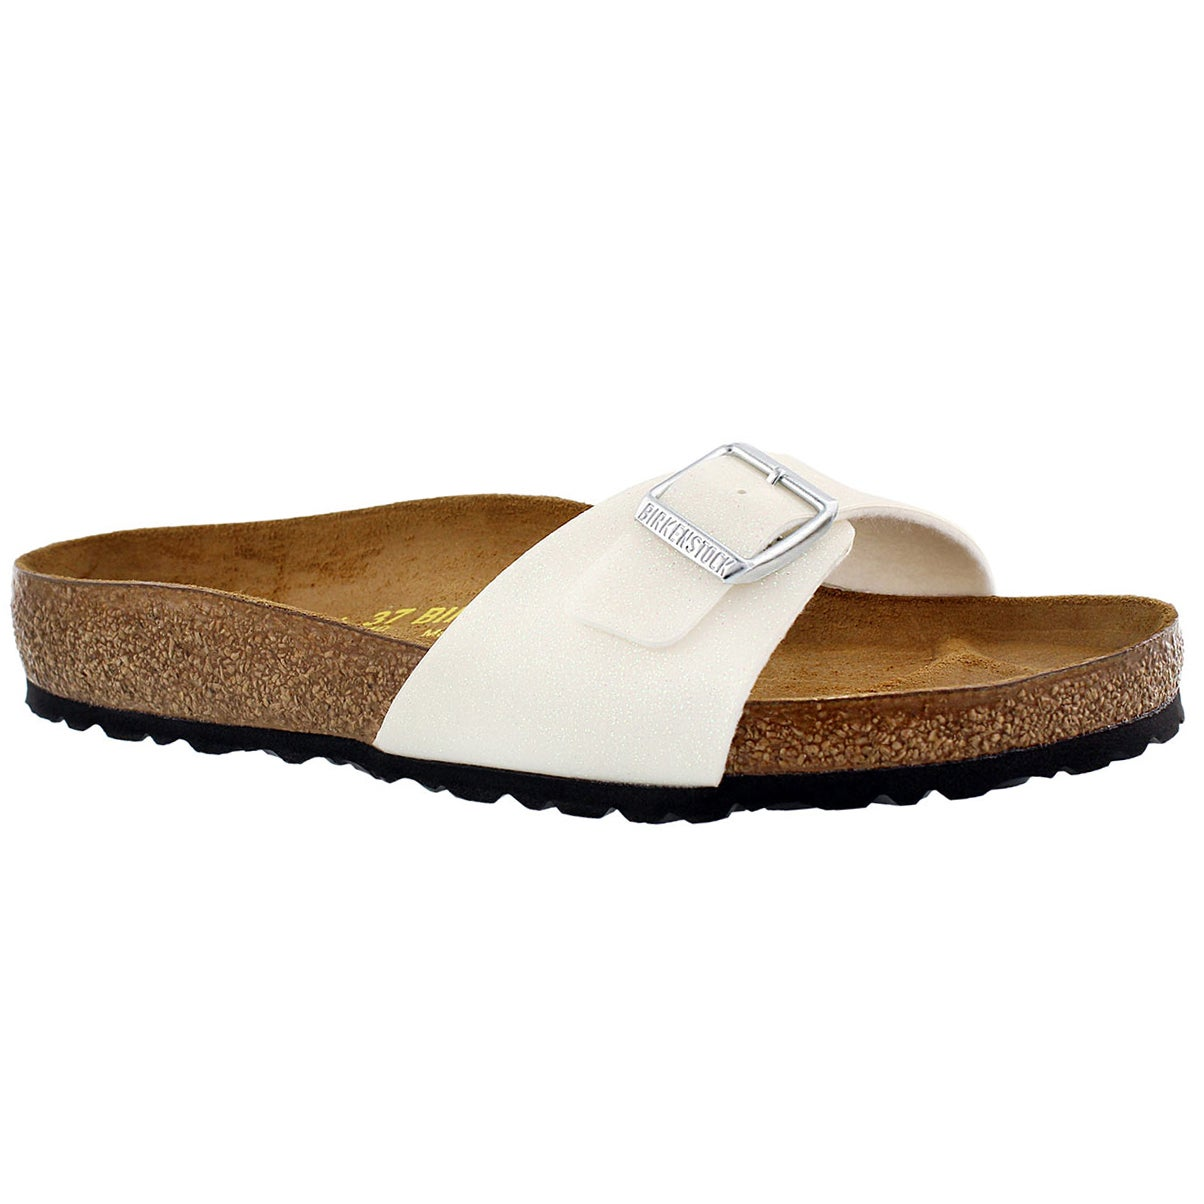 Lds Madrid magic galaxy wht slide sandal